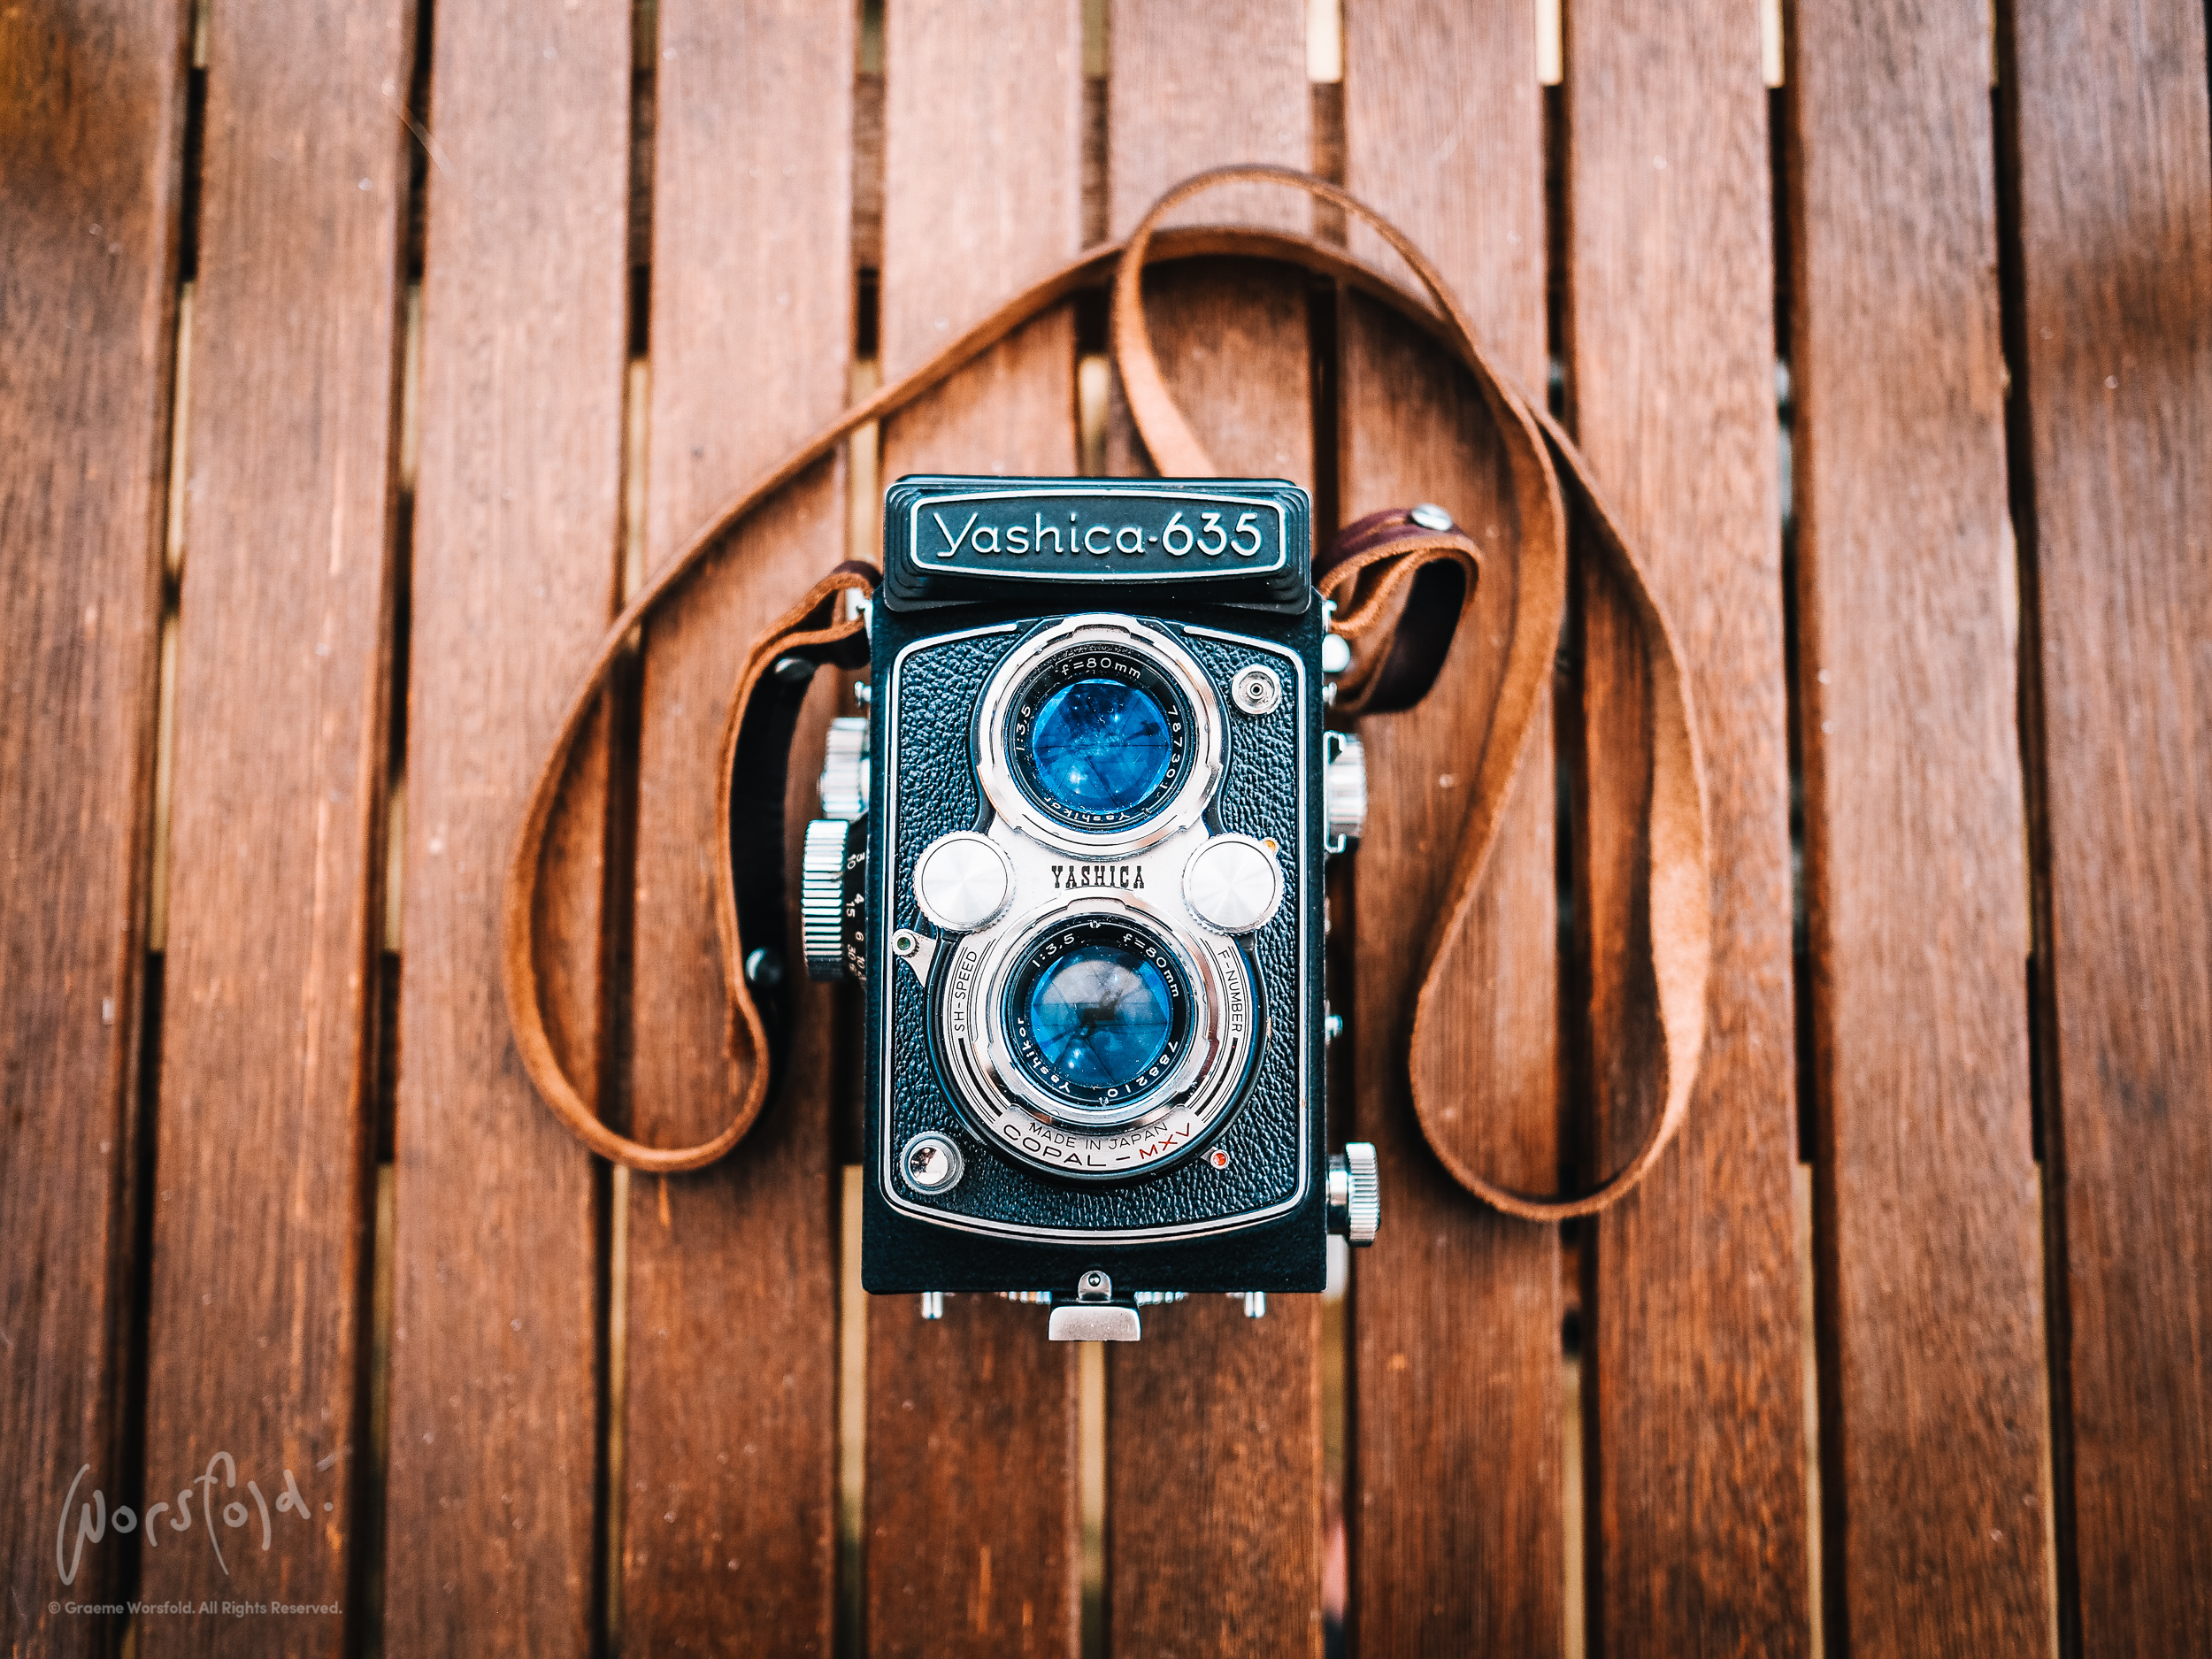 Yashica 635 camera on wooden bench